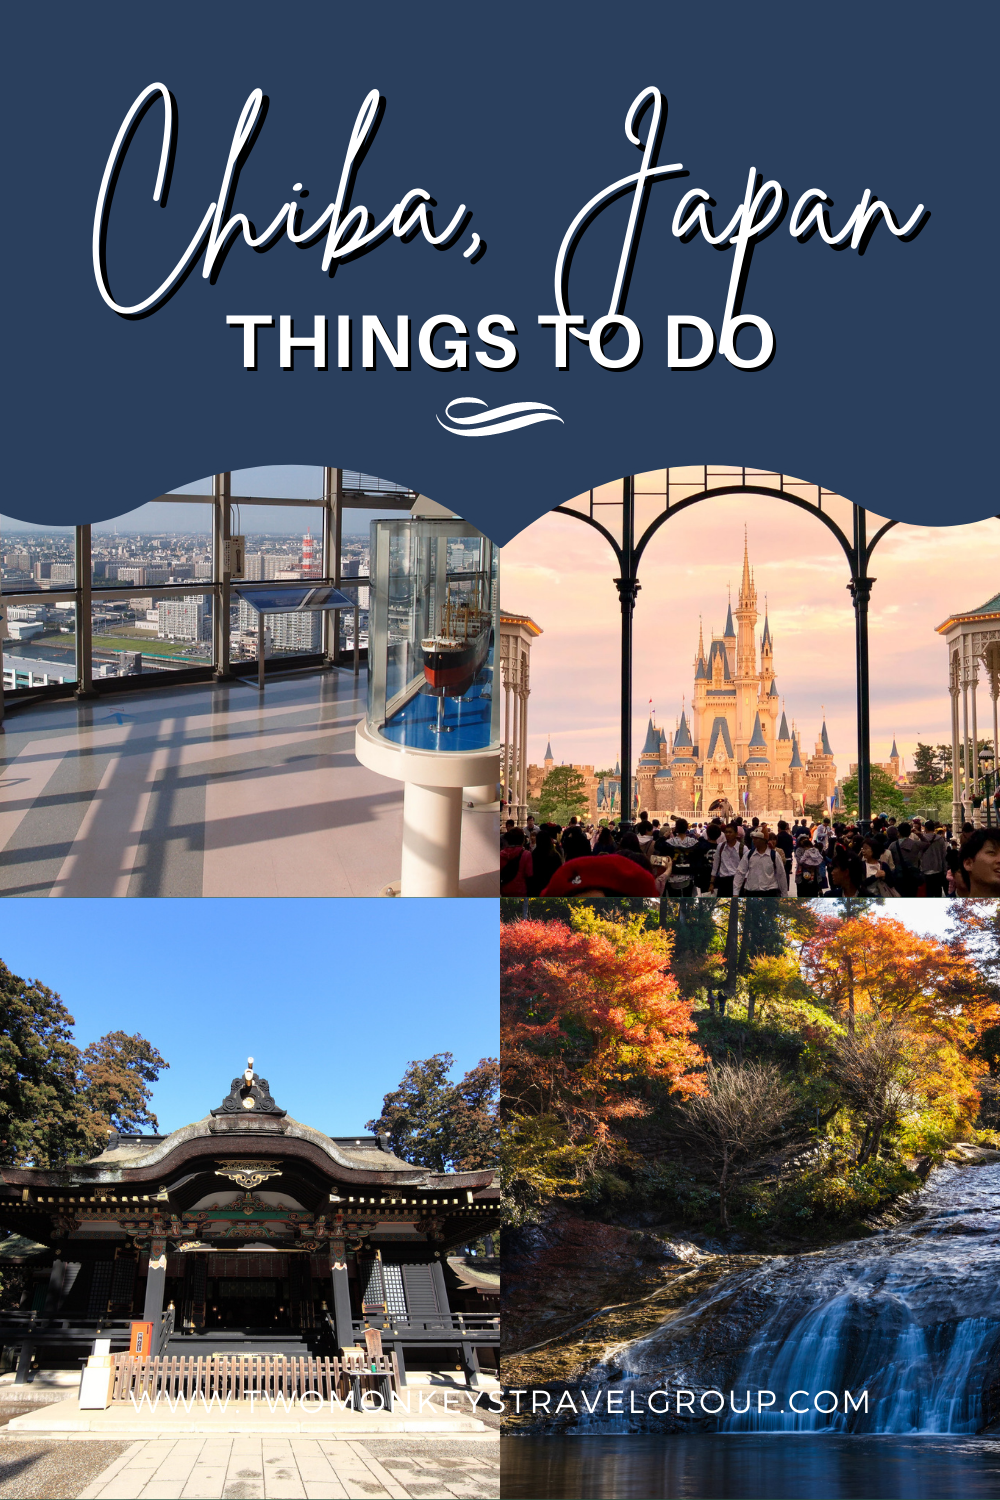 10 Things to do in Chiba, Japan [with Suggested Tours]2